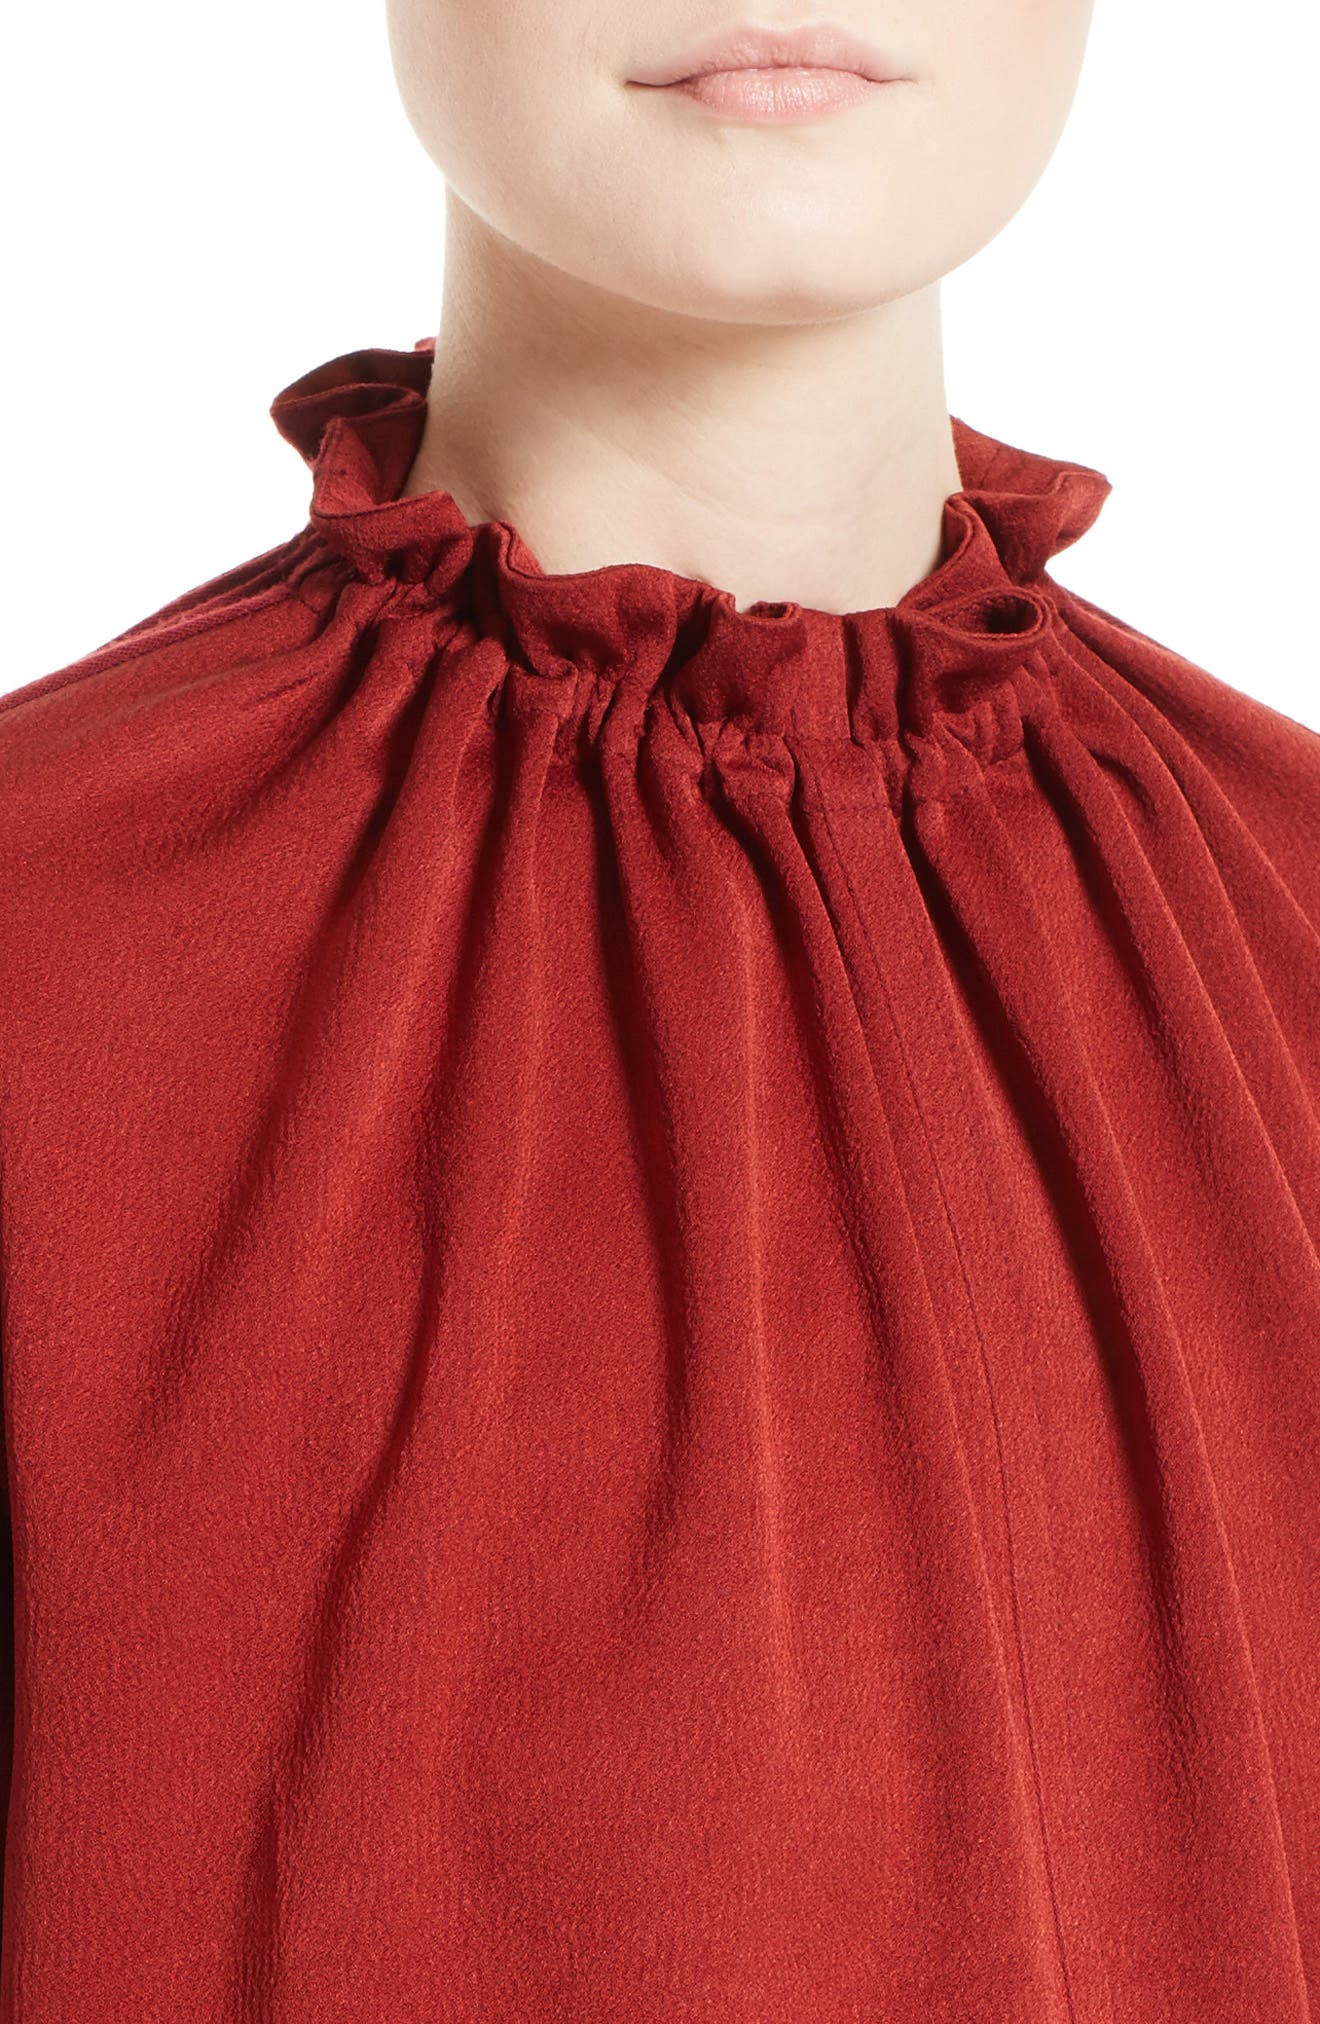 Crepe Gathered Neck Top,                             Alternate thumbnail 4, color,                             930